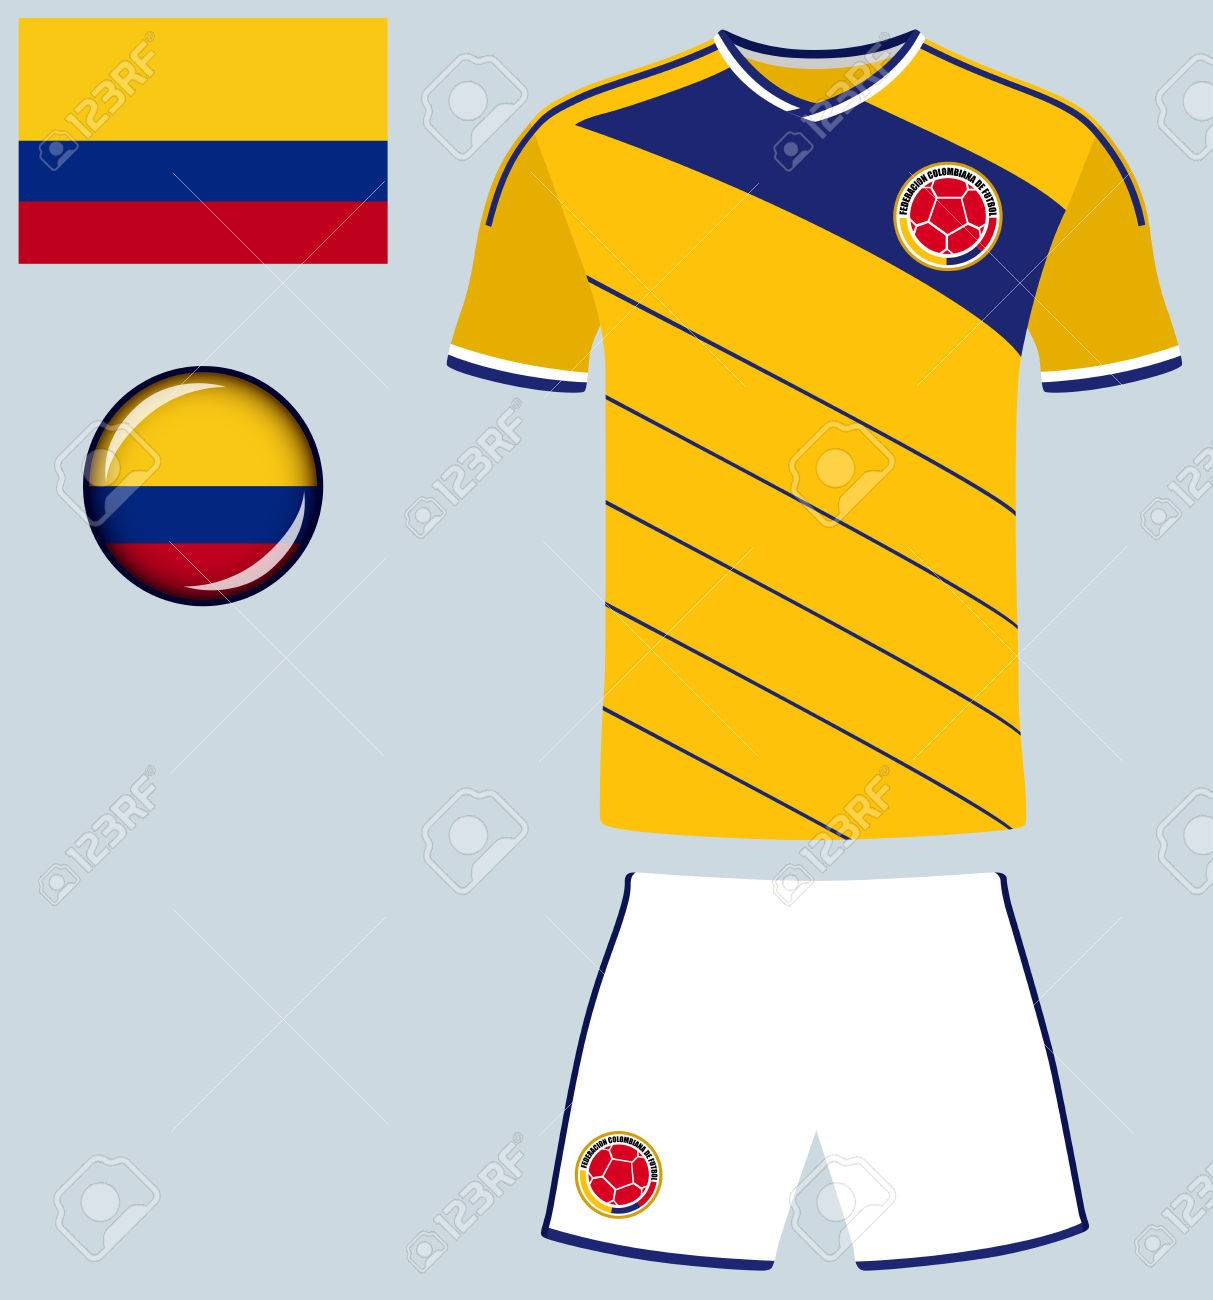 4e58c1c1a13 Colombia Football Jersey. Vector graphic illustration representing the national  football jersey of Colombia. Stock